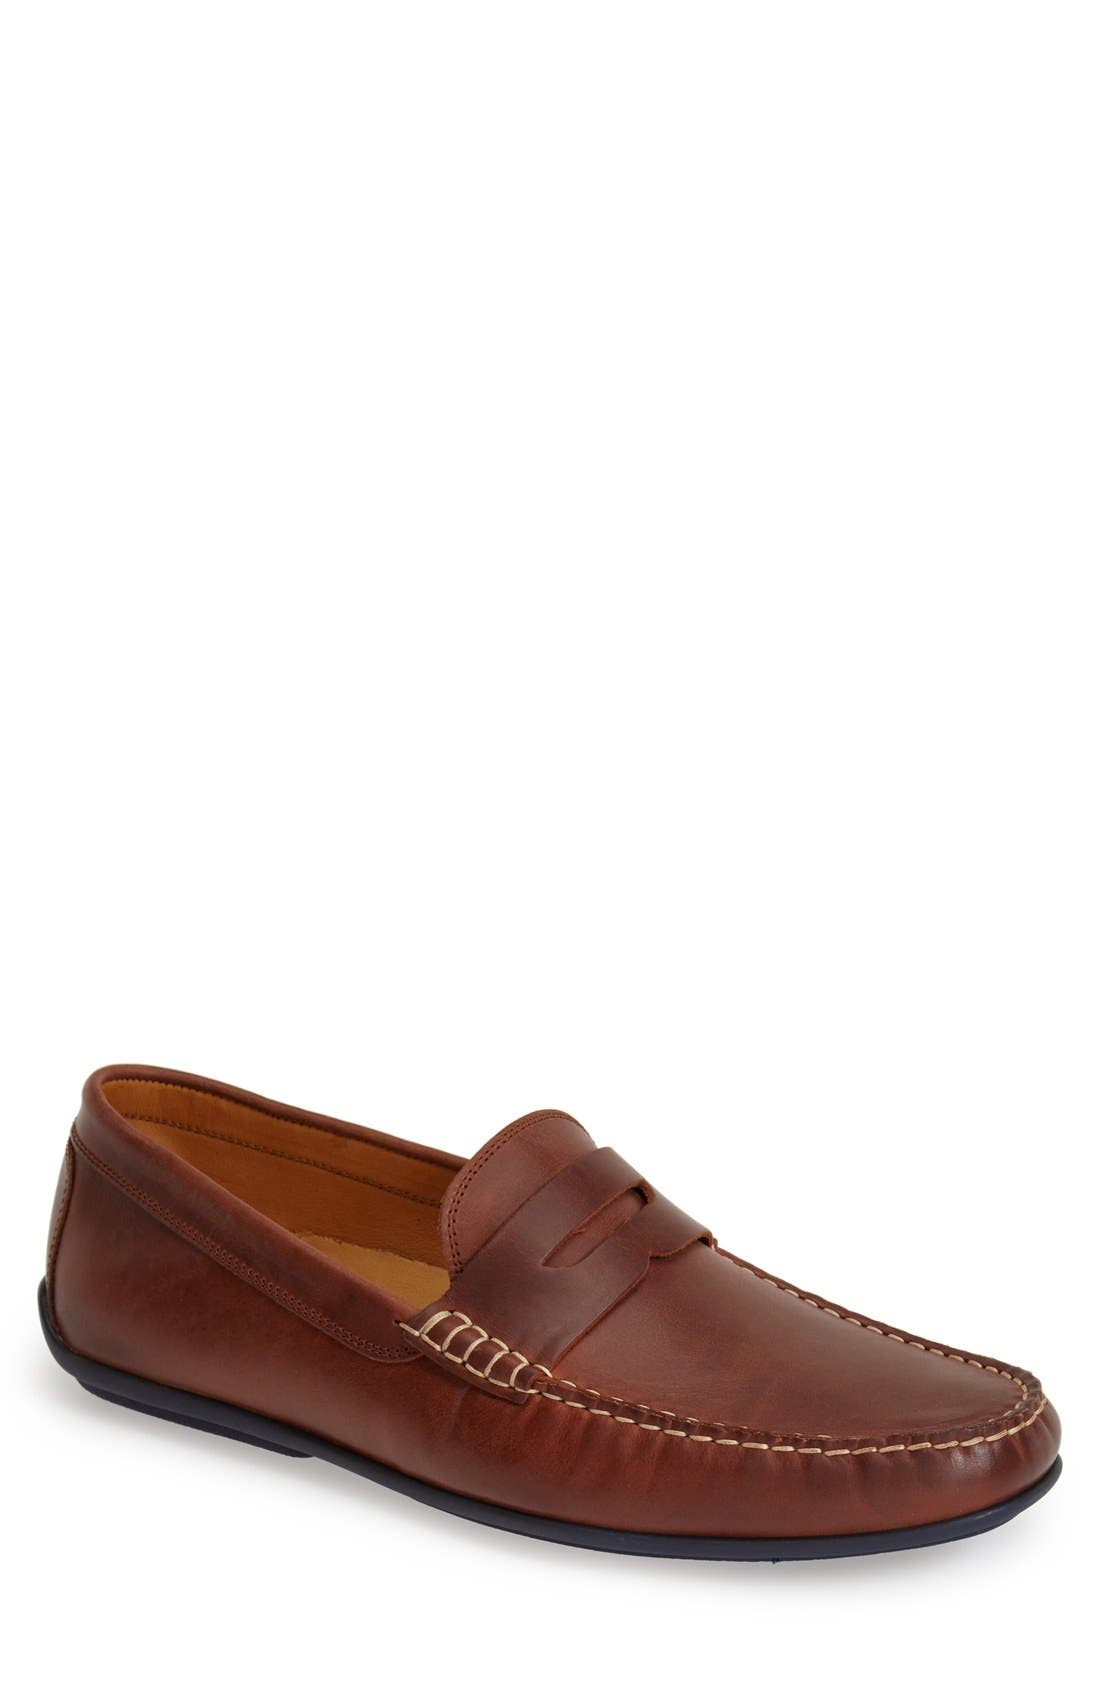 Austen Heller 'Clinton' Leather Penny Loafer (Men)